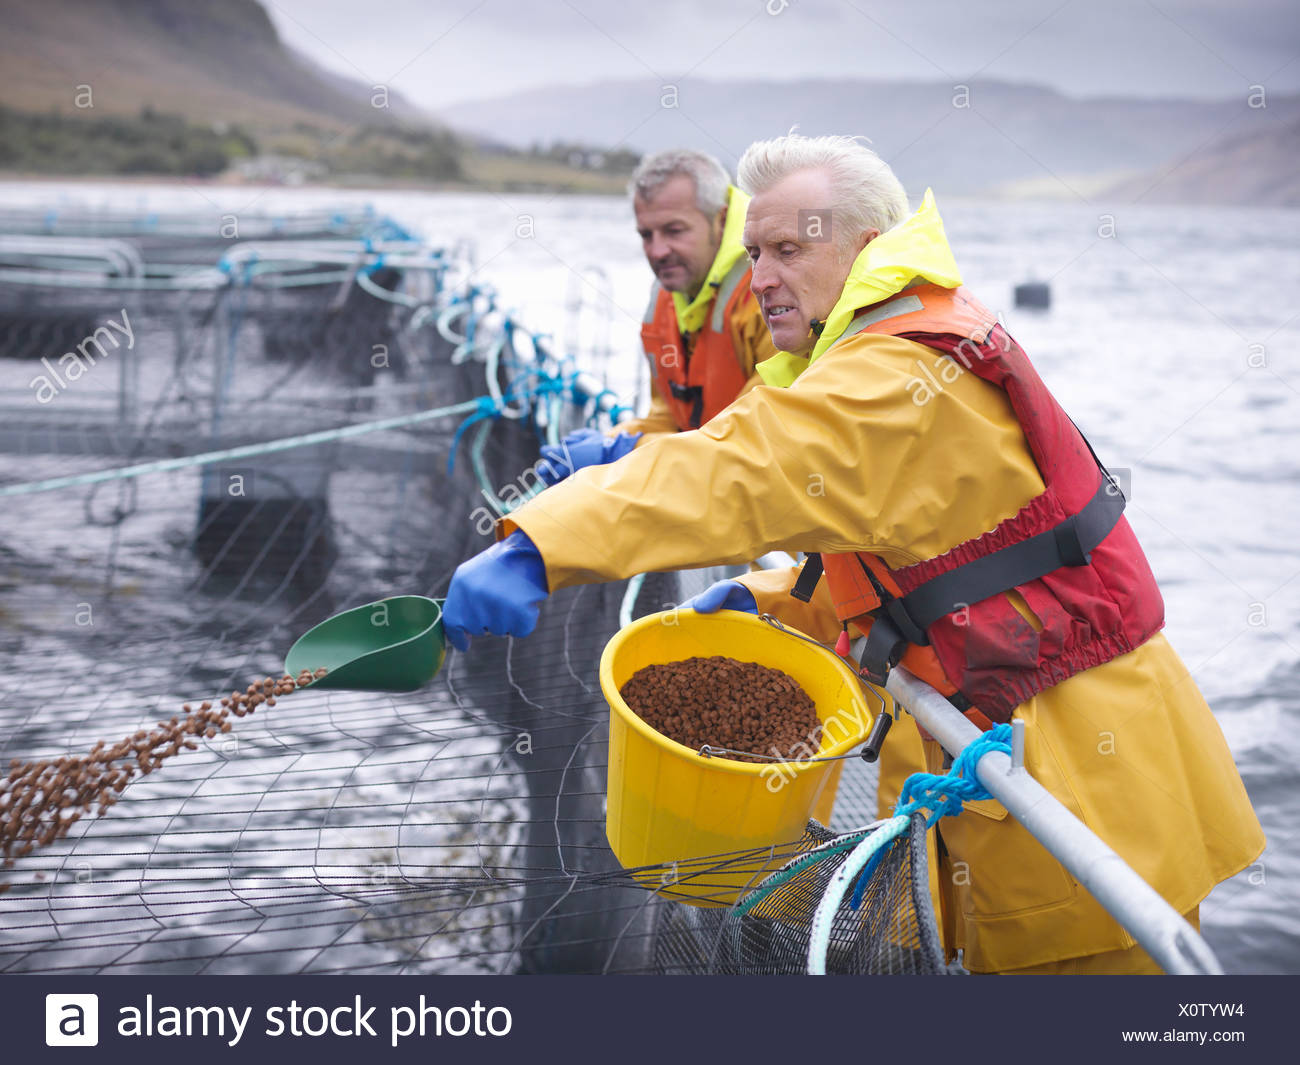 Worker feeding fish in farm - Stock Image